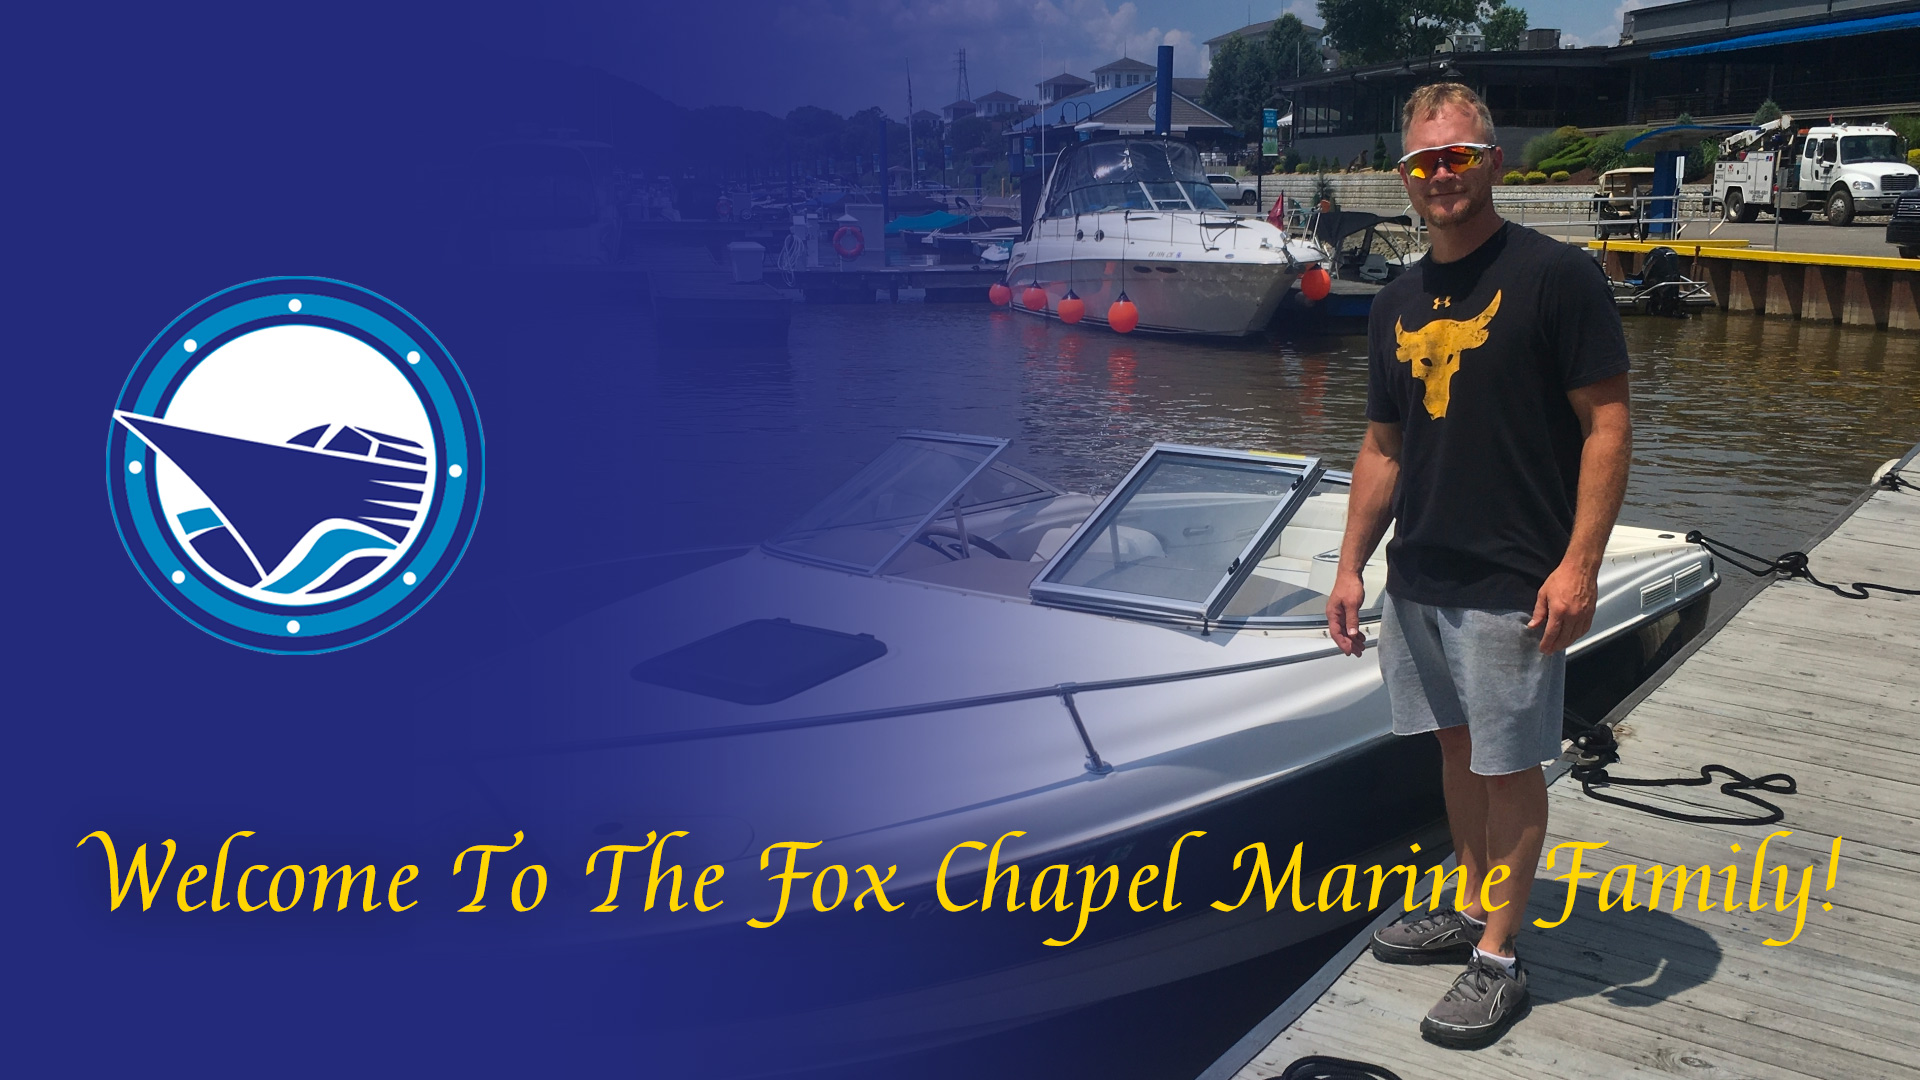 Welcome To The Fox Chapel Marine Family Randy!